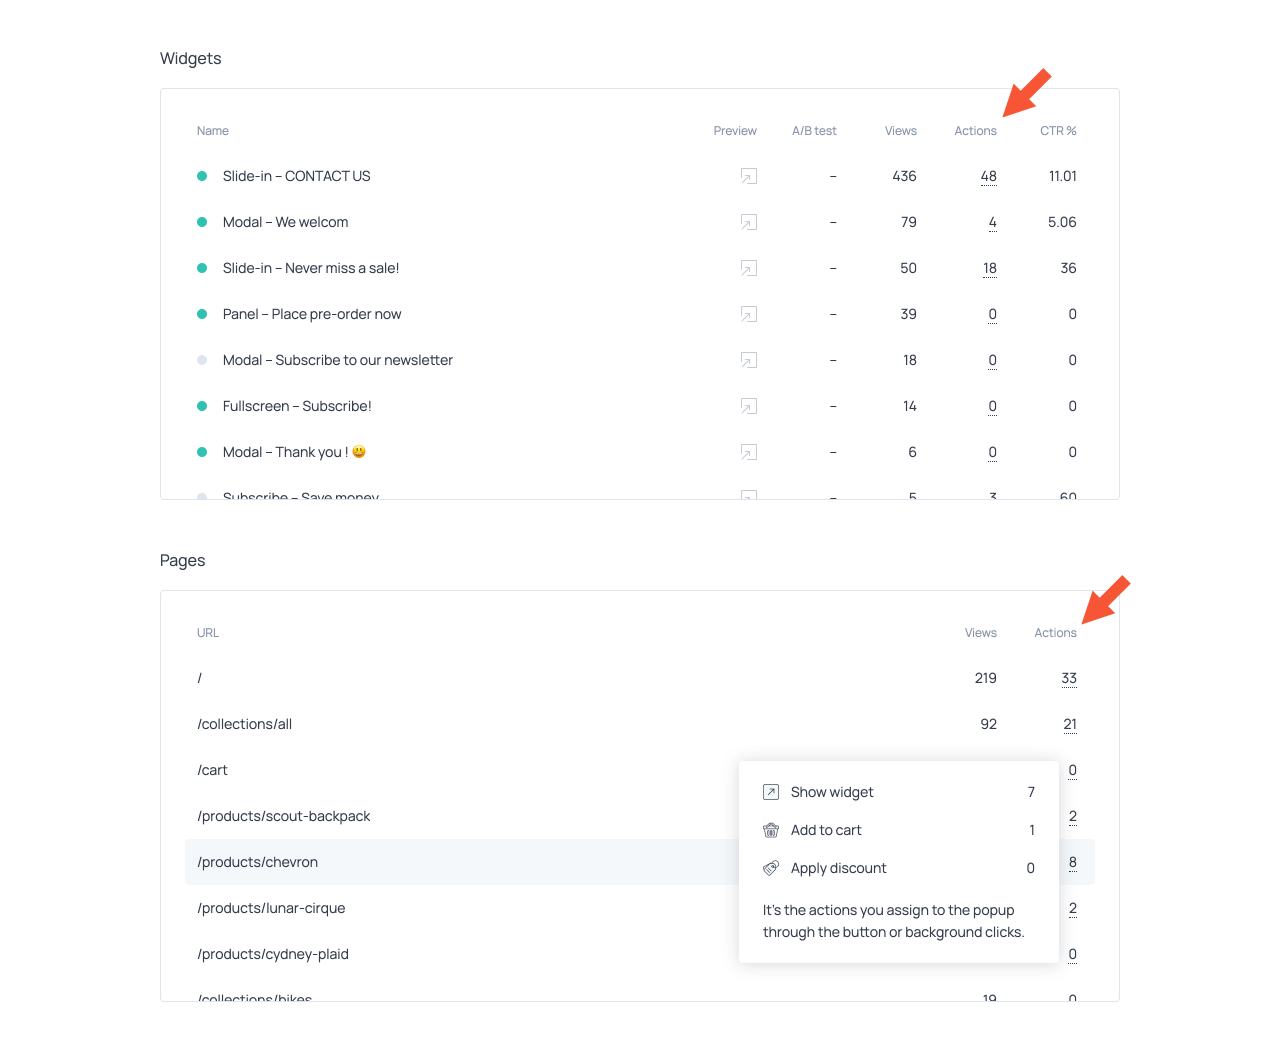 Action stats detailed sorted by pages and popups